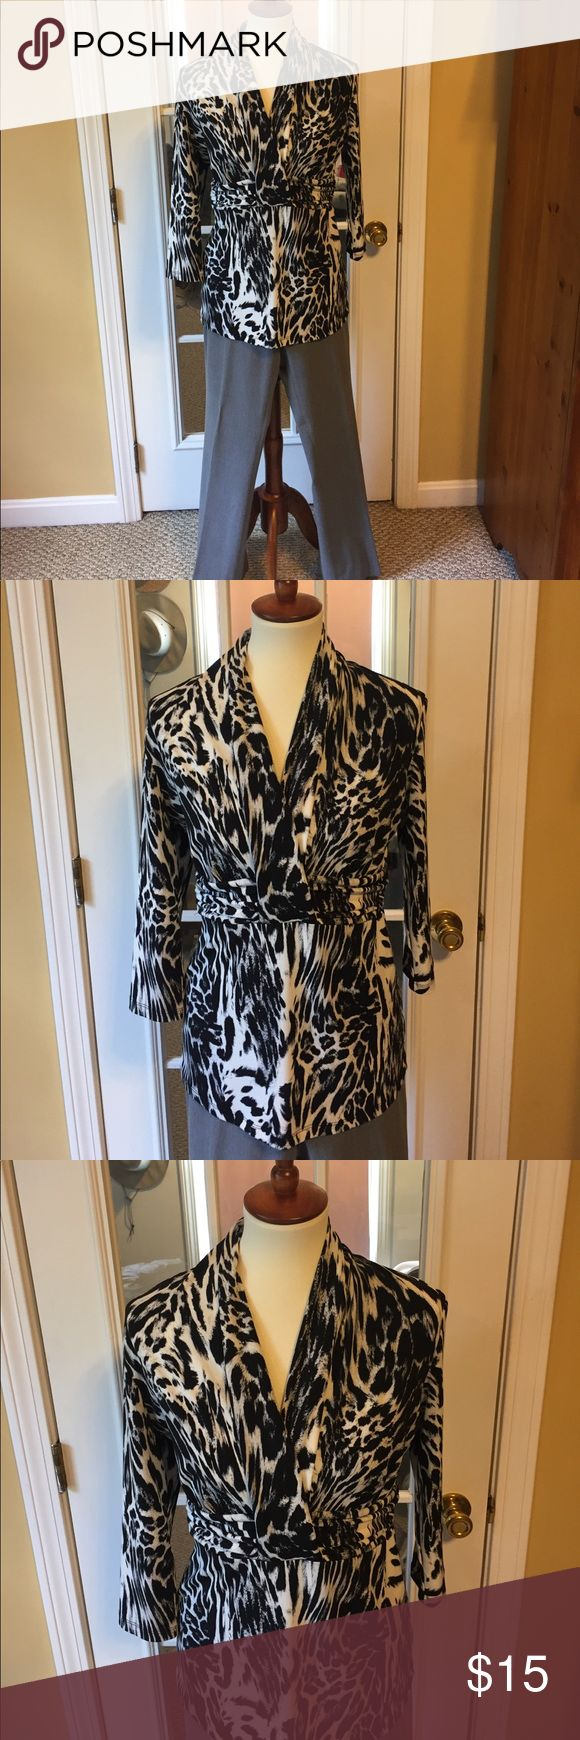 New York and company animal print blouse. New York and company animal print blouse. This is a beautiful blouse with a gorgeous neck line. 3/4 sleeve, cinched waist with built in wide belt look (see photo's) New York & Company Tops Blouses